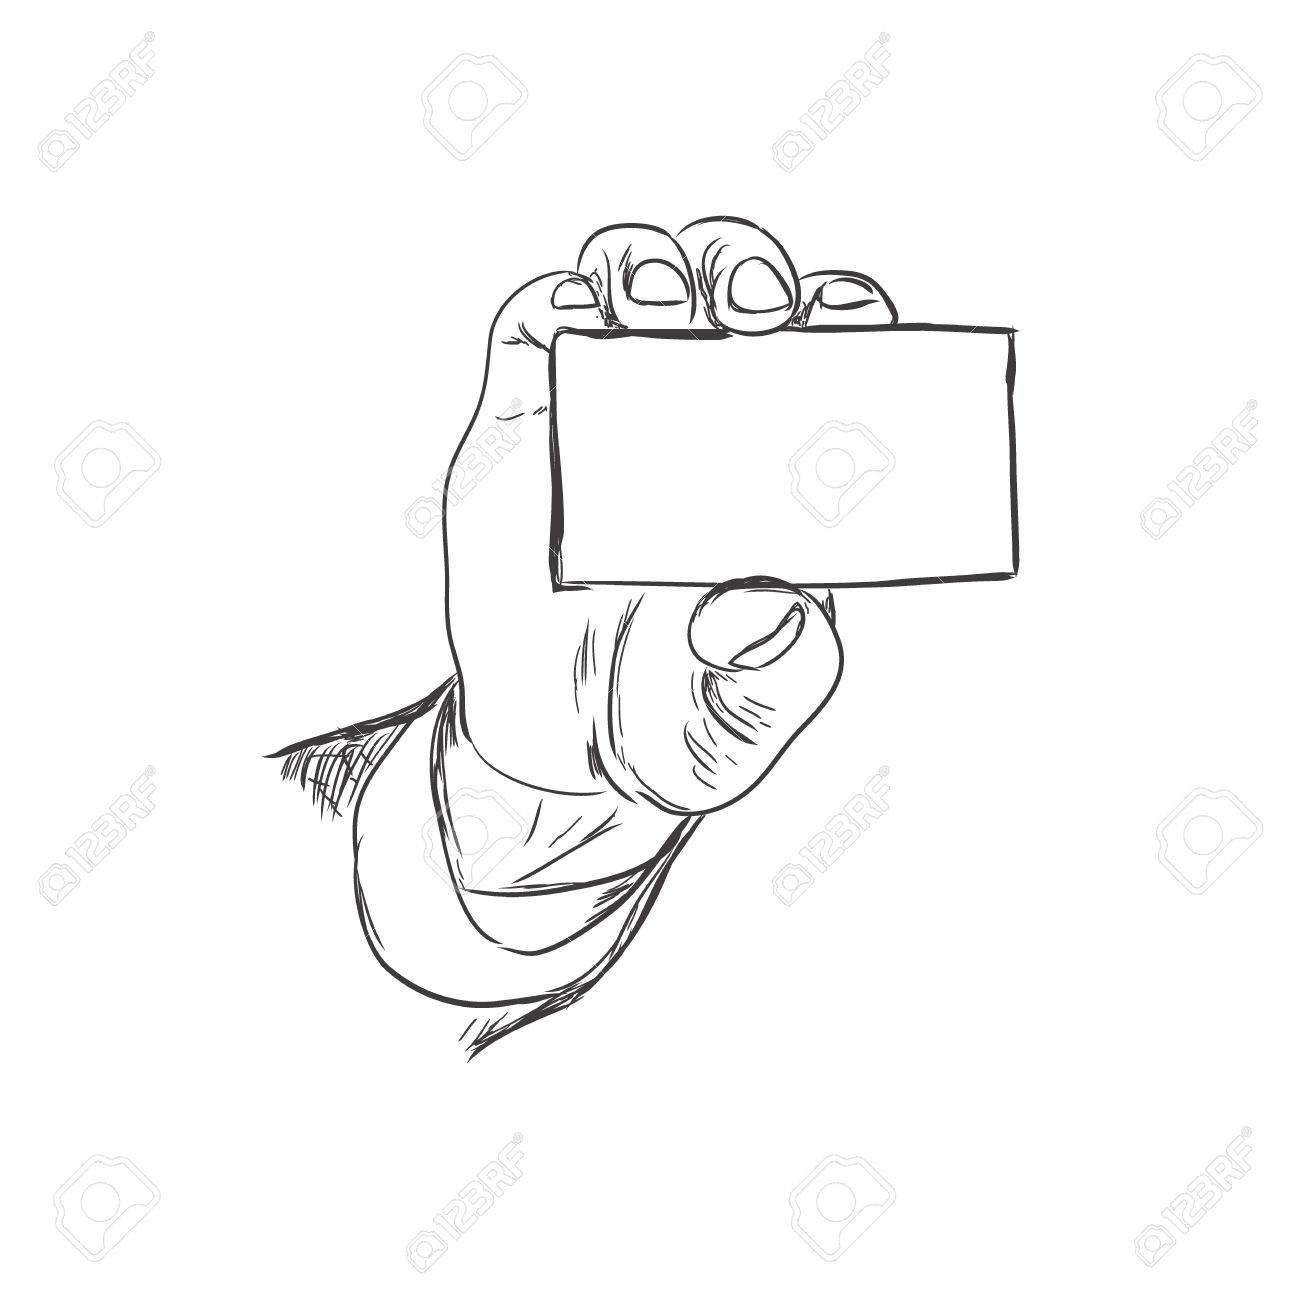 Business card drawing at getdrawings free for personal use 1300x1300 hand holding business card sketch style vector illustration reheart Images